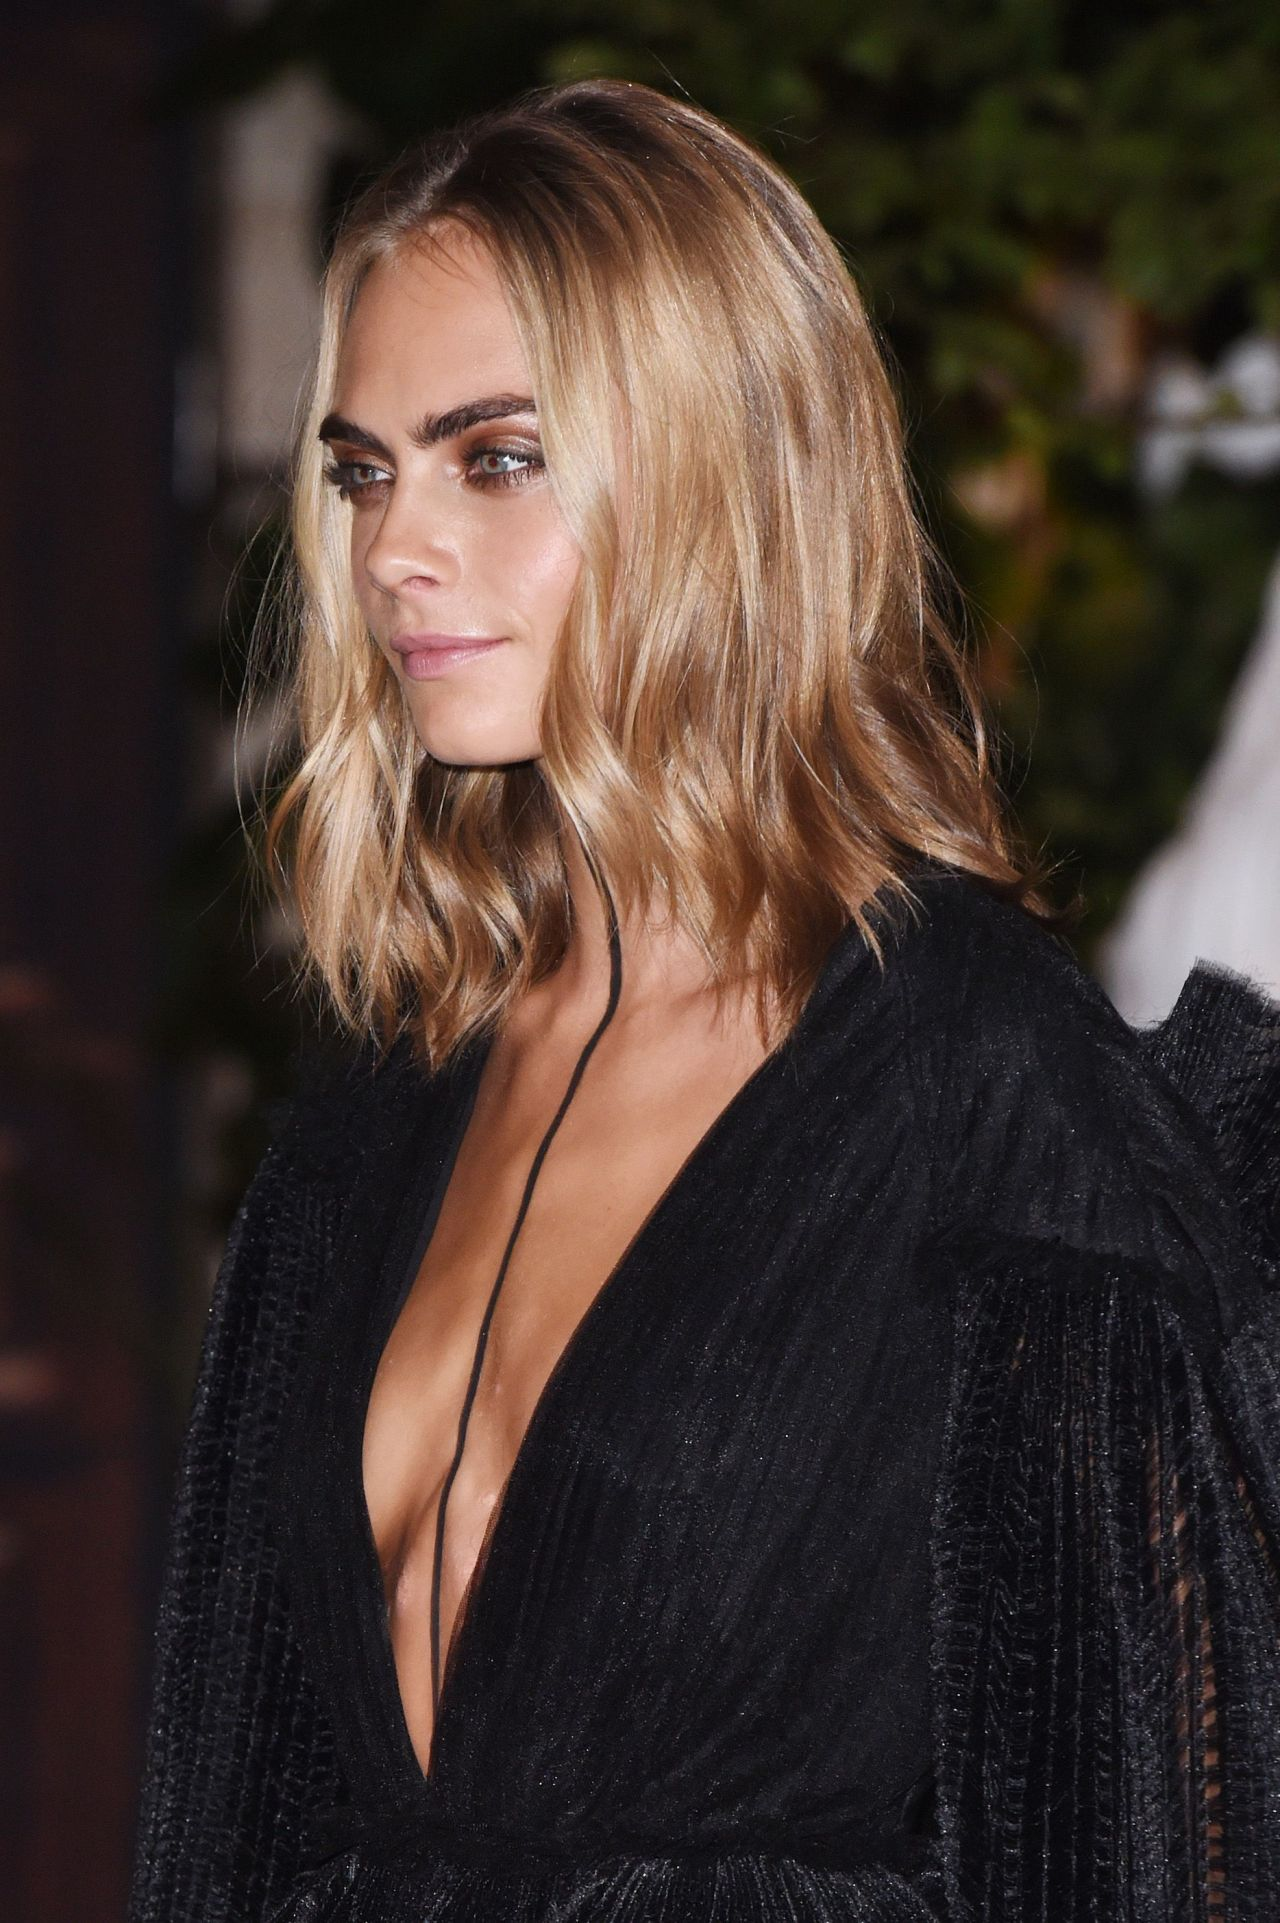 Cara Delevingne At Burberry Show London Fashion Week 9